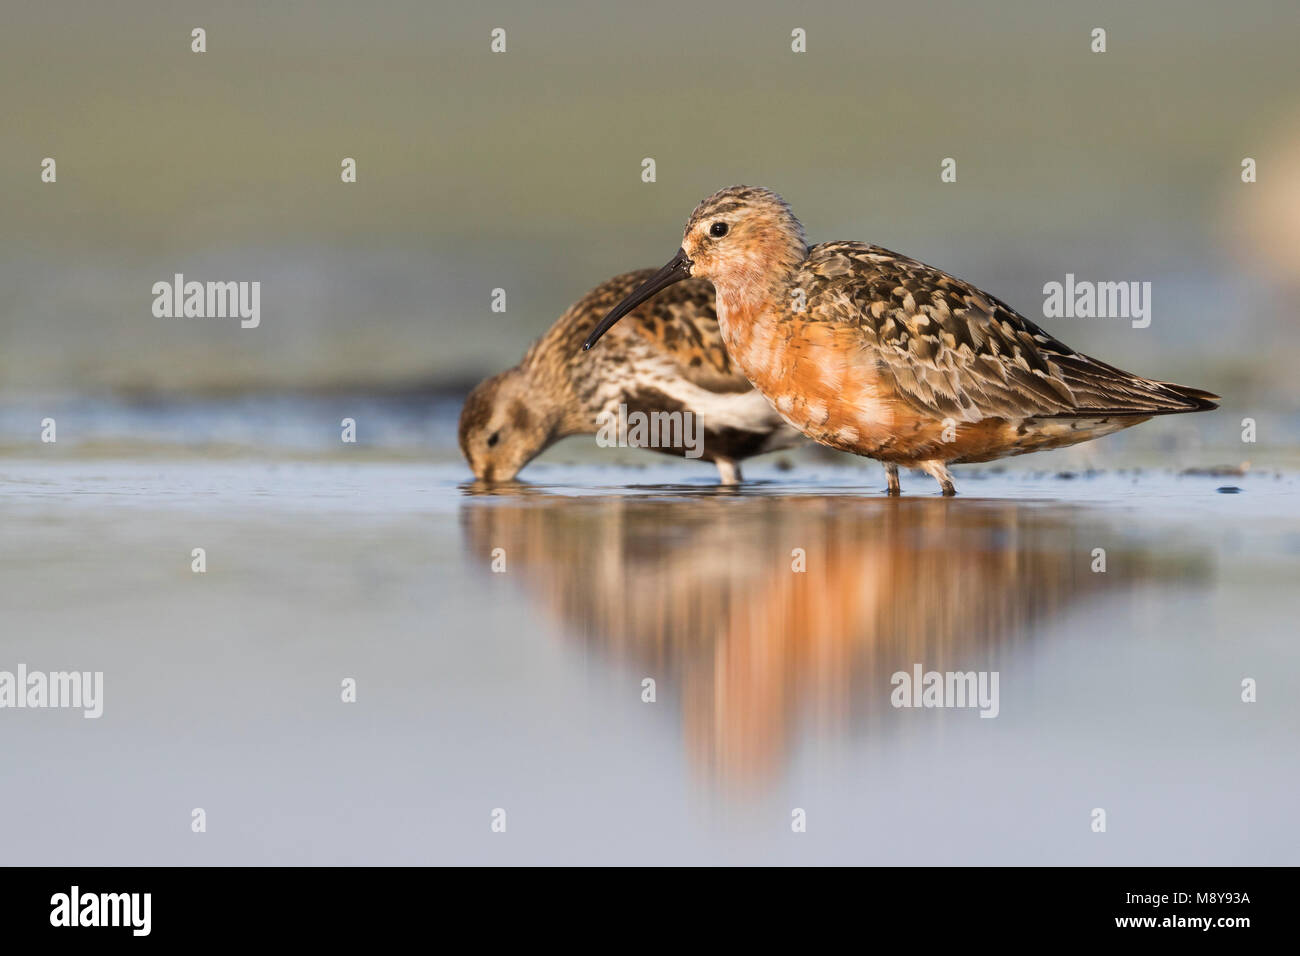 Curlew Sandpiper - Sichelstrandläufer - Calidris ferruginea, Germany, adult breeding plumage with Dunlin - Stock Image